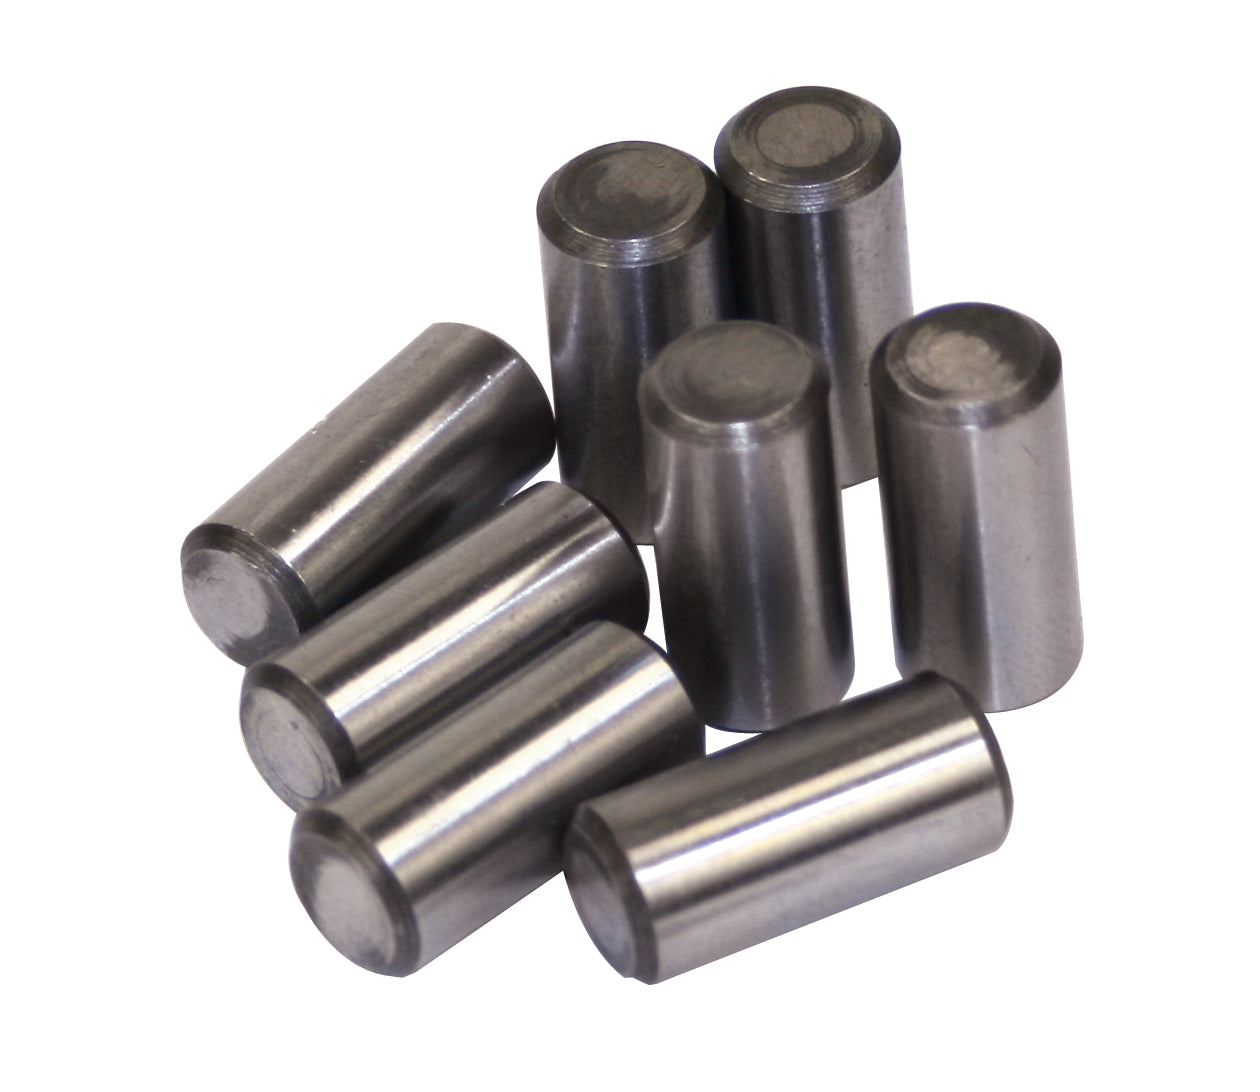 CRANKSHAFT DOWEL PINS 8MM, 1600CC AIR-COOLED VW ENGINE, SET 8